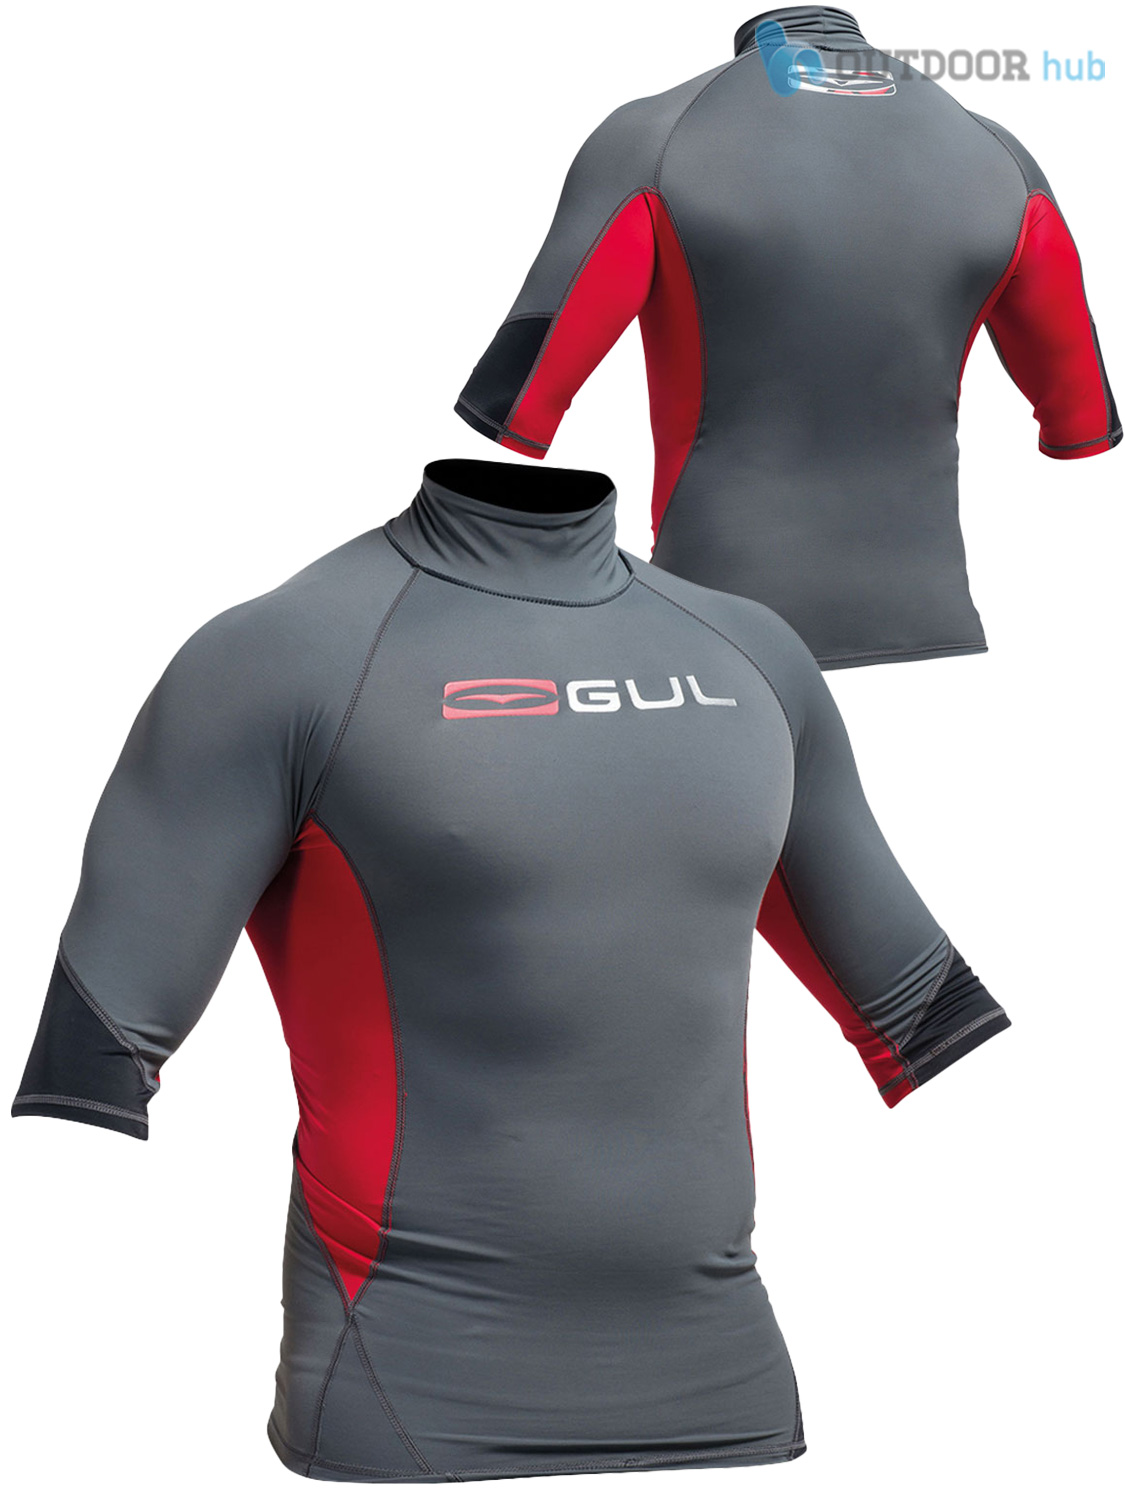 Gul-Xola-Mens-Short-Sleeve-Rash-Guard-Vest-Wetsuit-Top-UV-50-Surf-Swim-Dive thumbnail 5